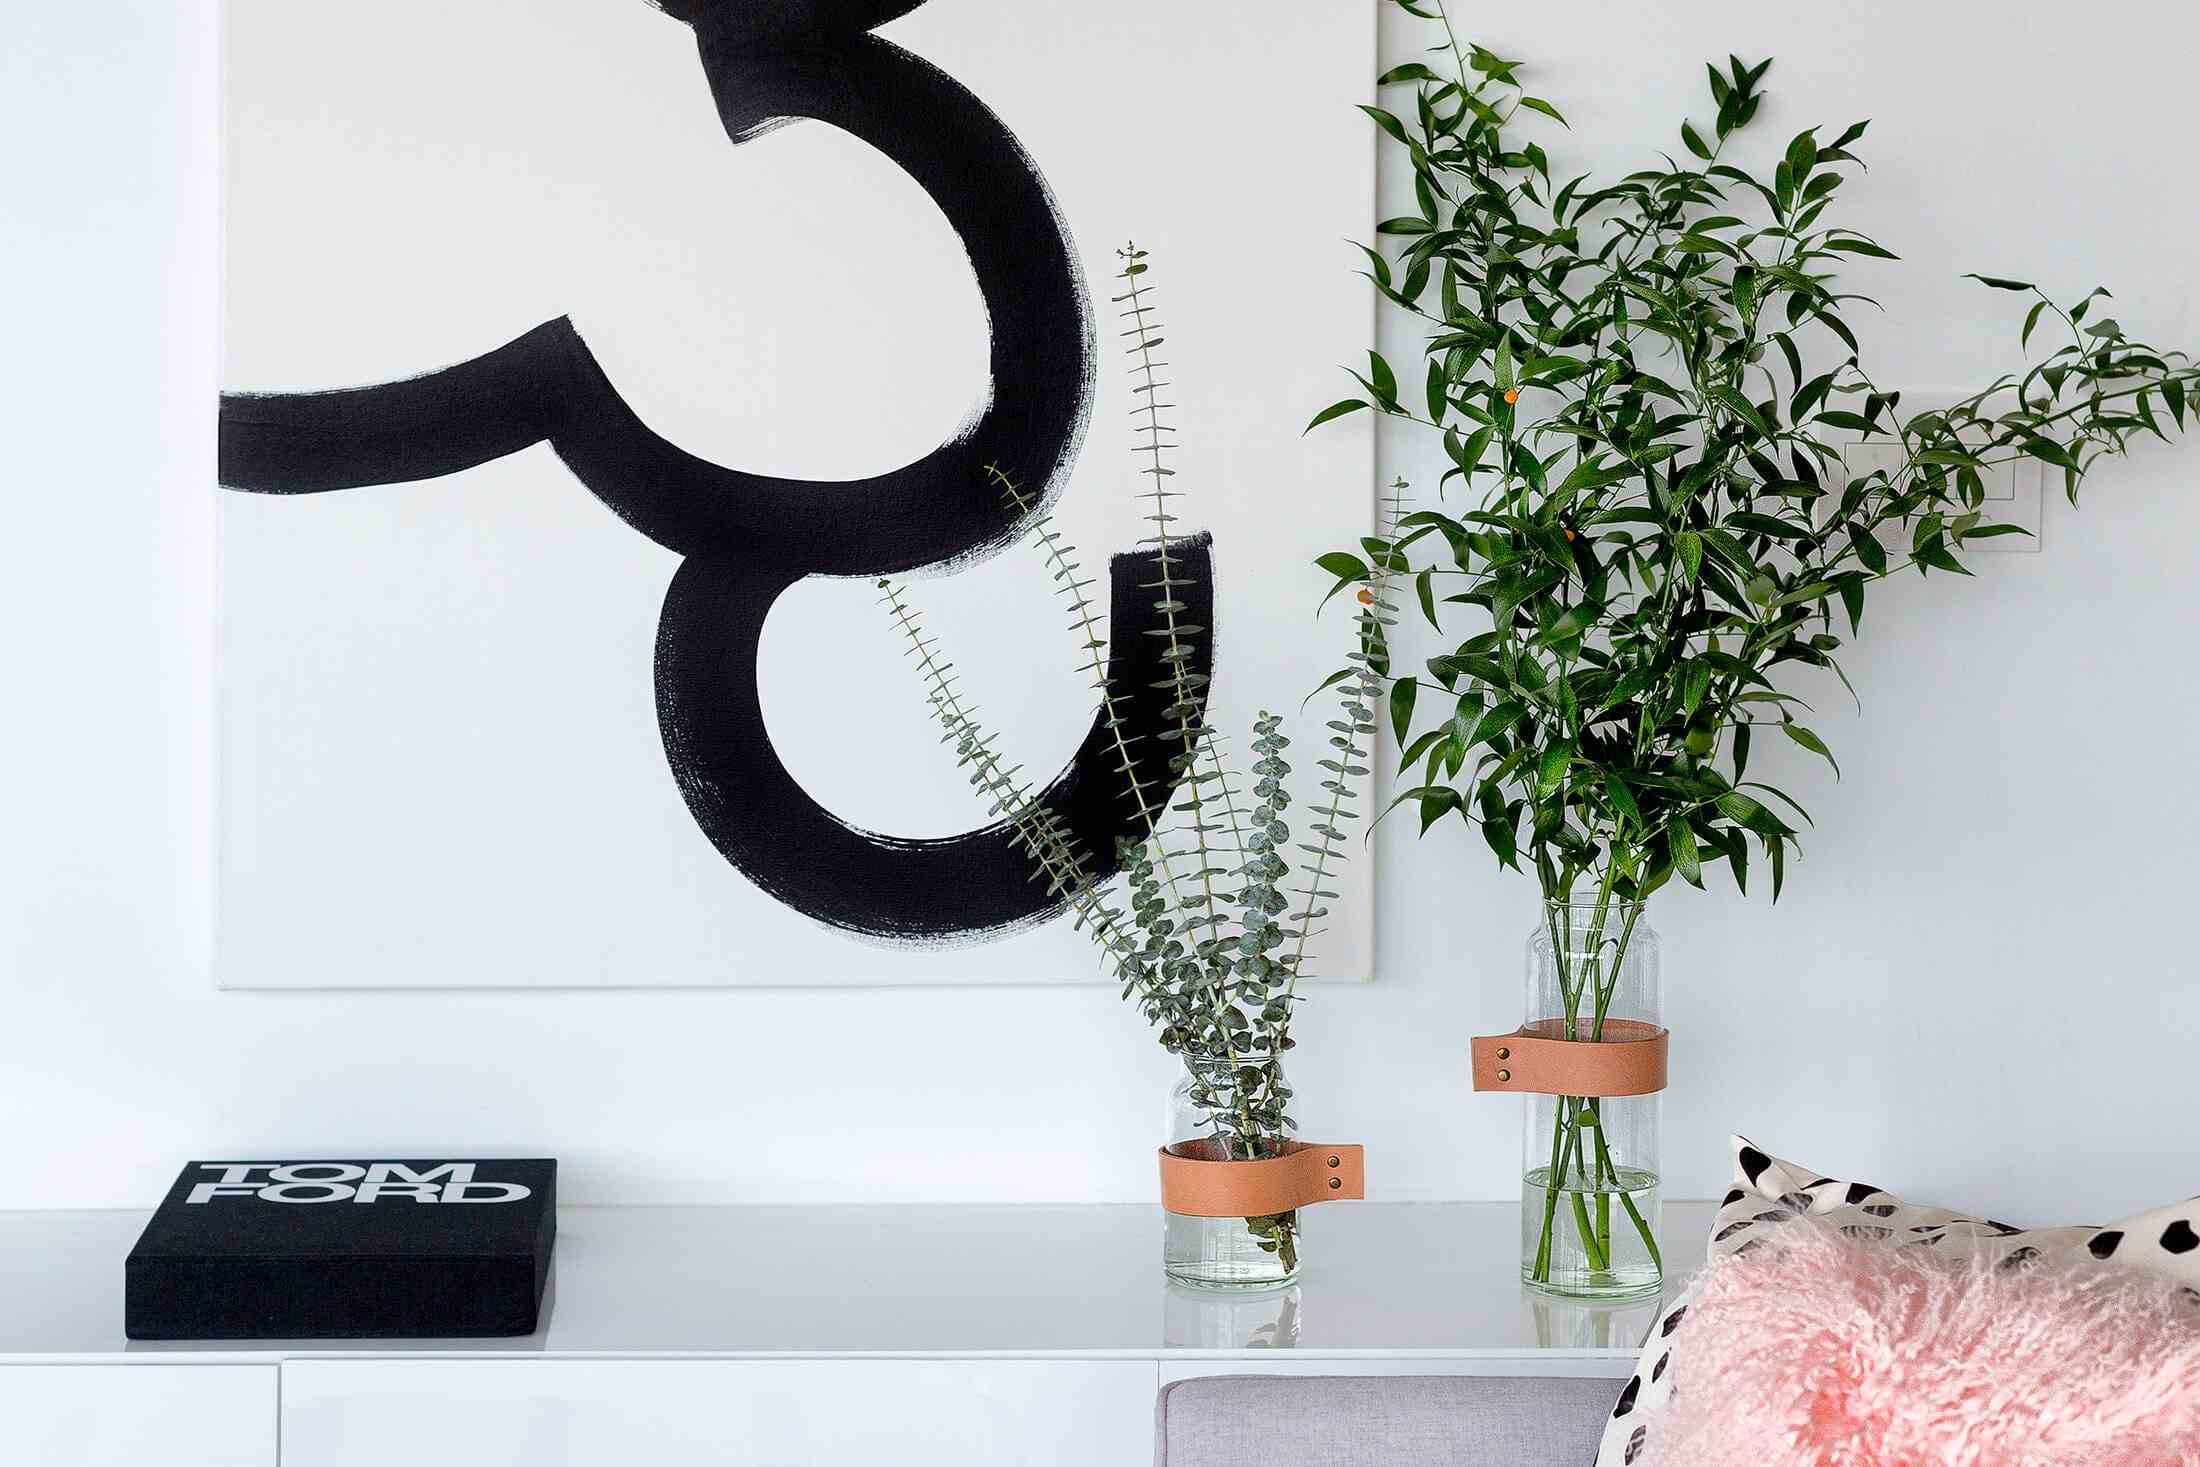 Modern apartment decor: art, vases, and a book